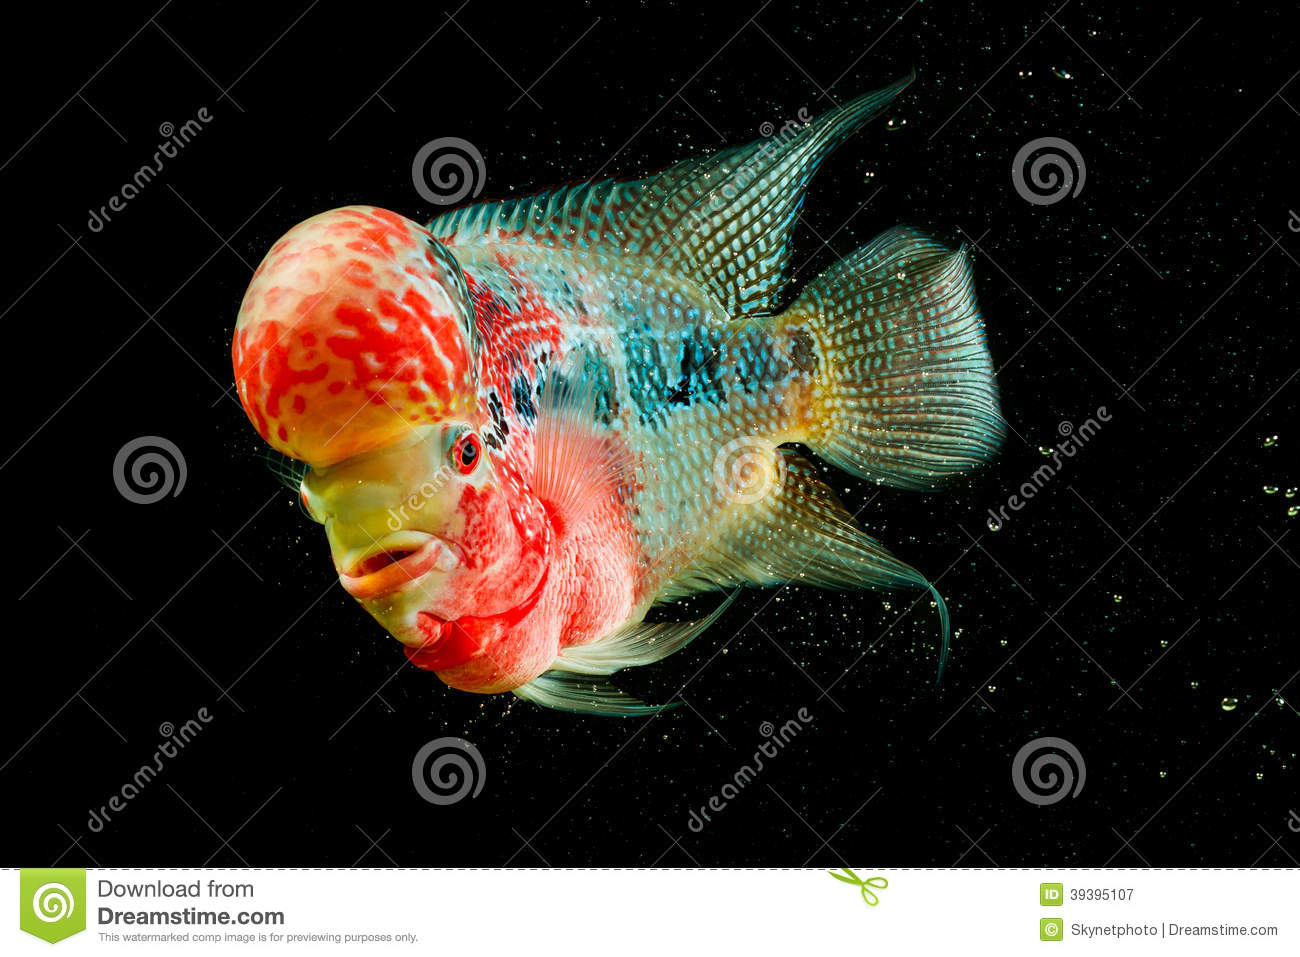 Flowerhorn cichlid fish stock image image of diving for Flower horn fish price